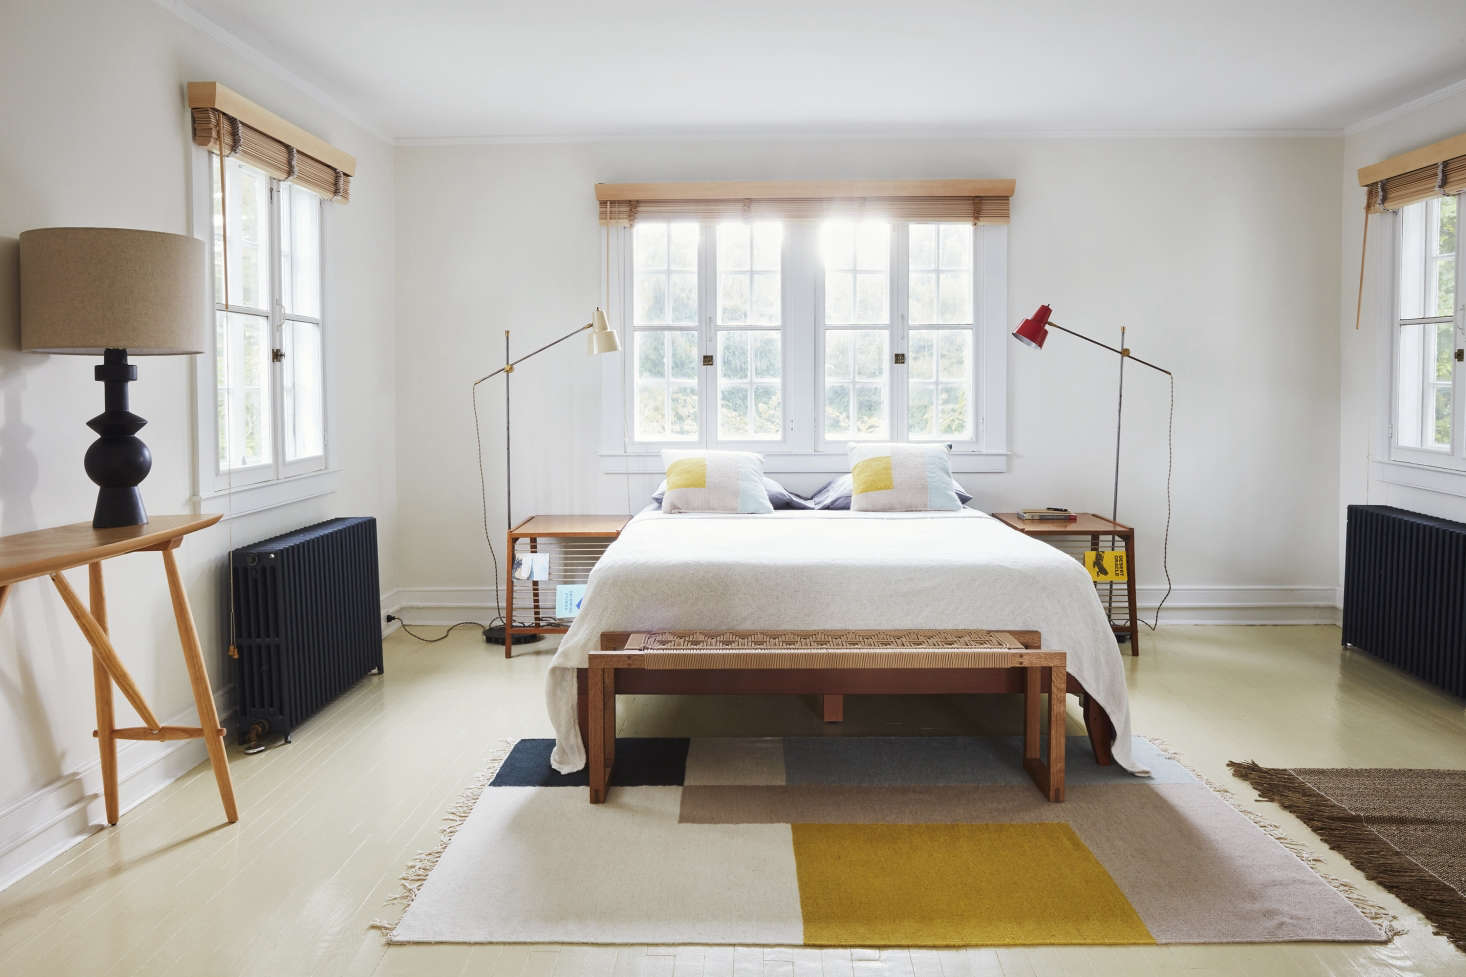 Designer C. S. Valentin preserved the original yellow-painted wood floors in the bedroom of a sea captain&#8